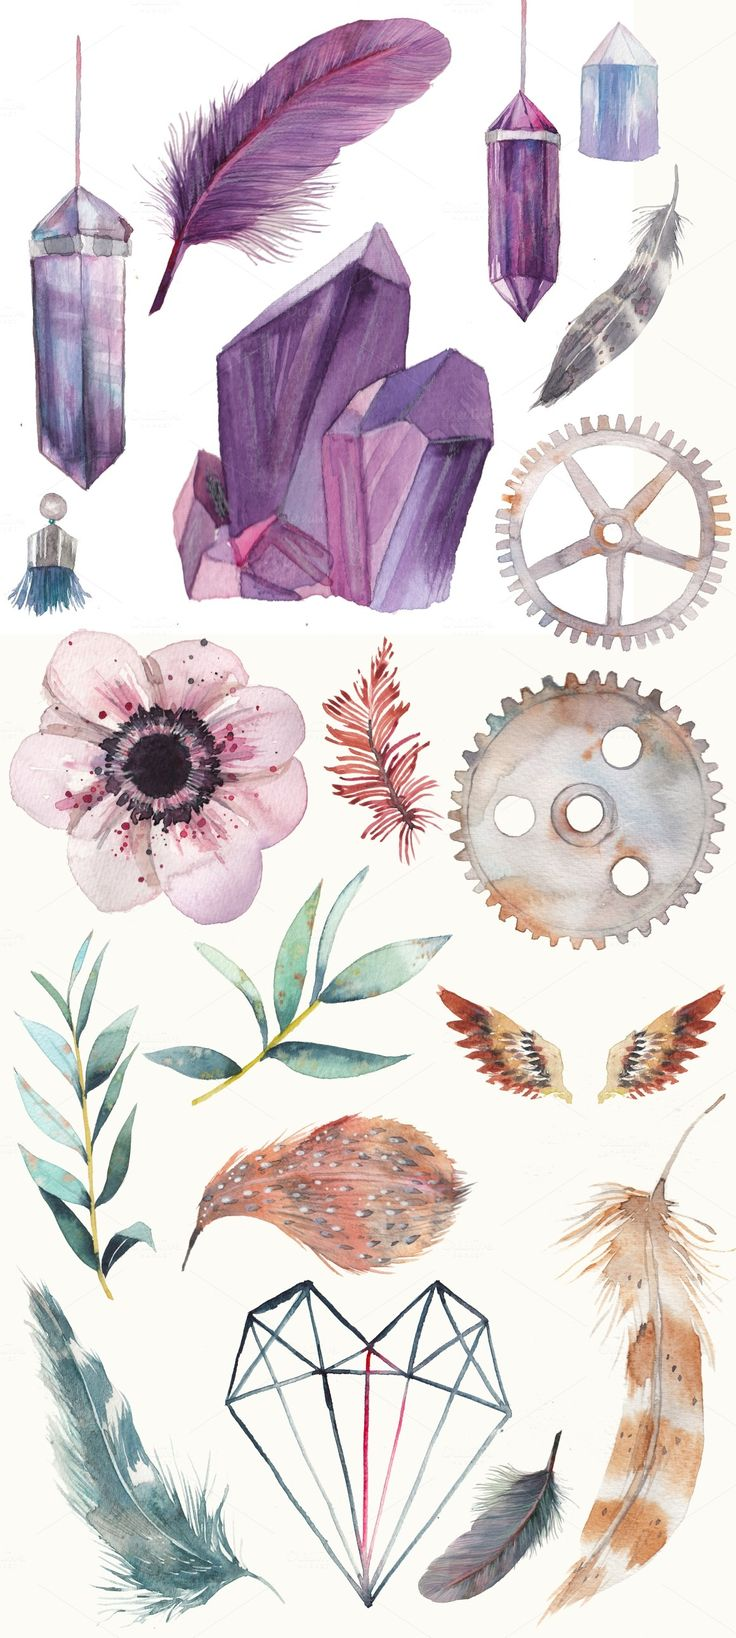 Introducing watercolor Impression set: gem stones, bird feathers, vintage rusty gear wheels, floral elements. Perfect for wedding things, cards, labels, invitations, web, scrapbook, etc!